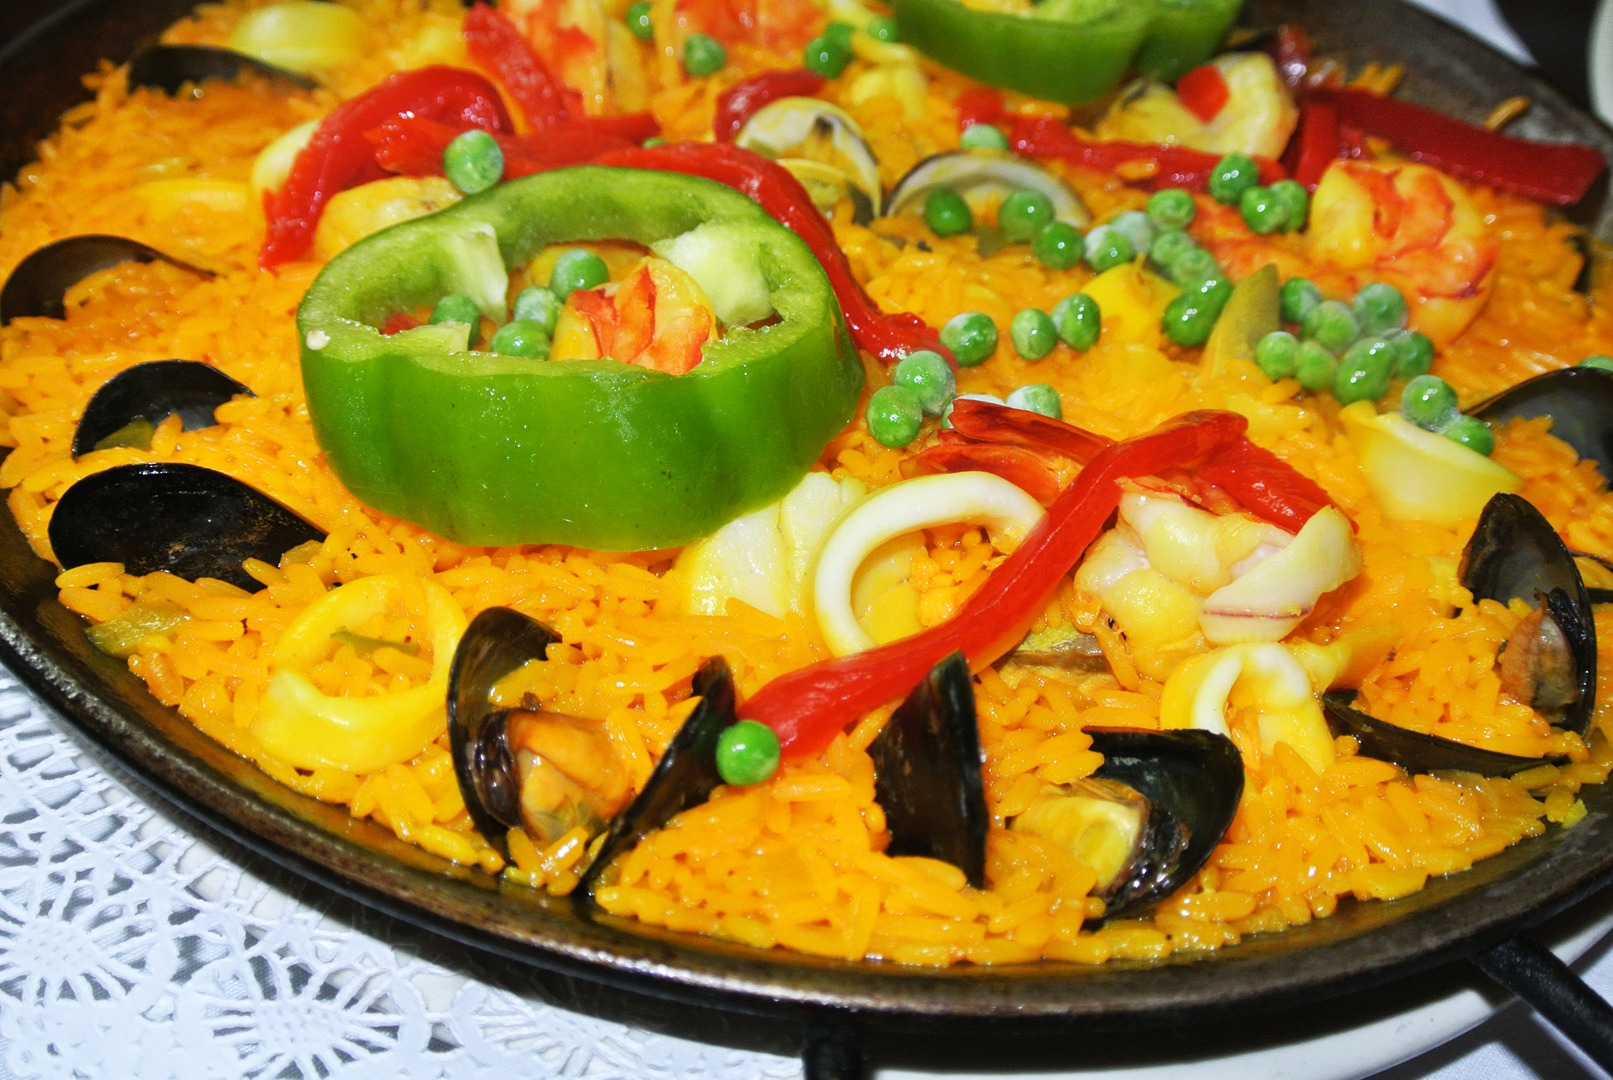 Seafood paella with yellow rice, mussels, calamari, peas, and red and green peppers